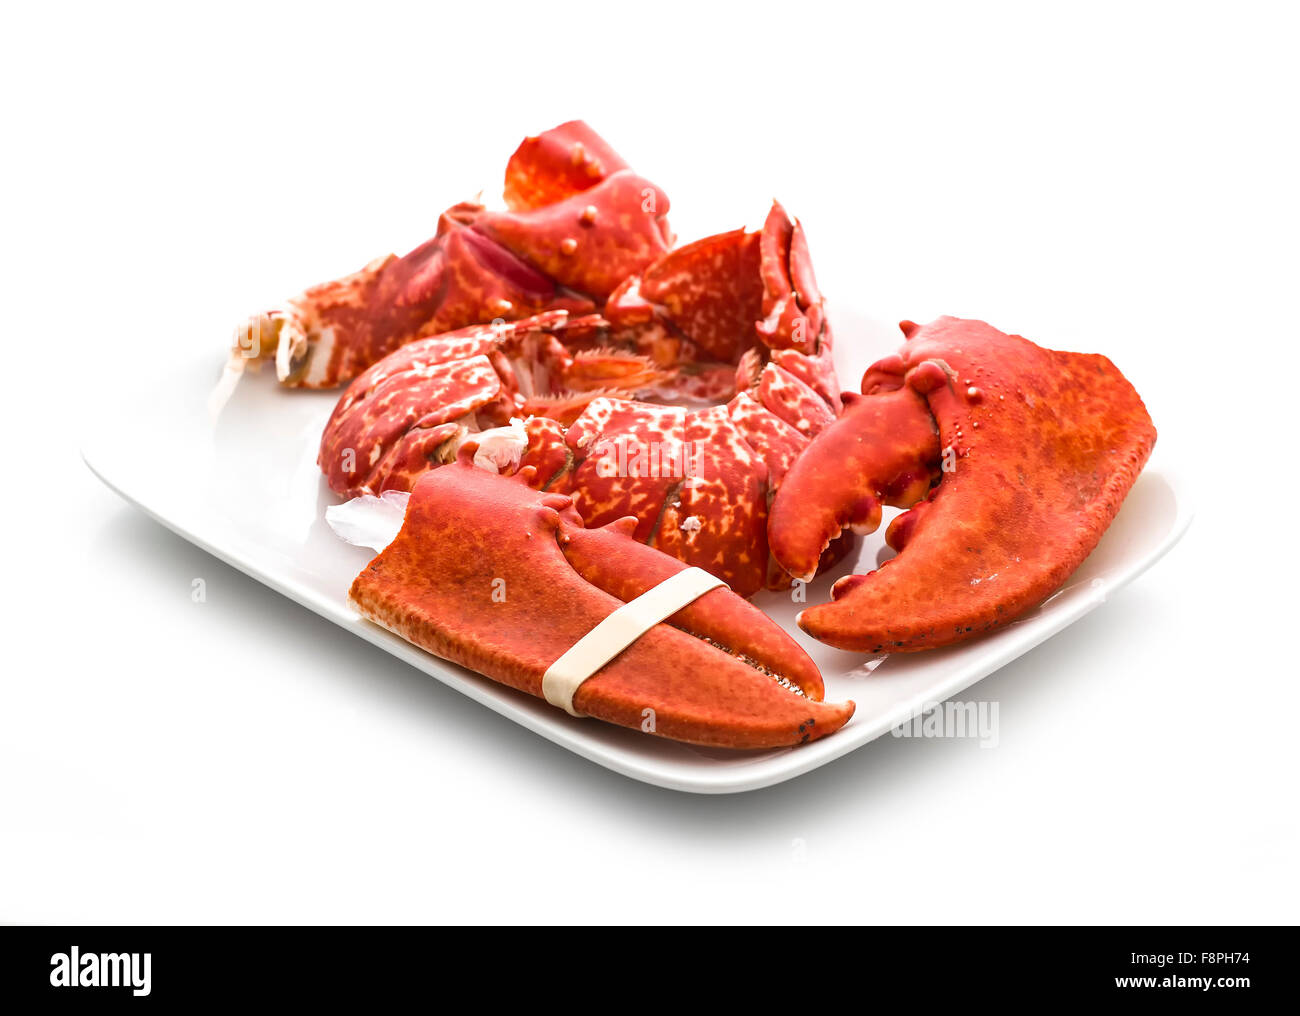 Claws and Tail of a Cooked European Common Lobster isolated on a white studio background. - Stock Image